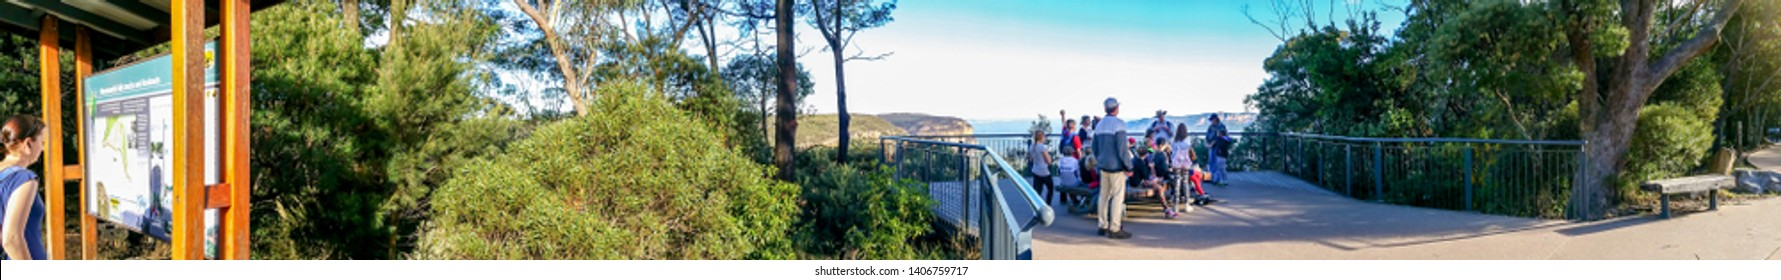 Wentworth Falls, Australia - May 16, 2016: Panorama of the Jamison Lookout, with visitors on seats and a lady studying a directory board. Jamison Valley is behind the lookout area. UNESCO listed site.